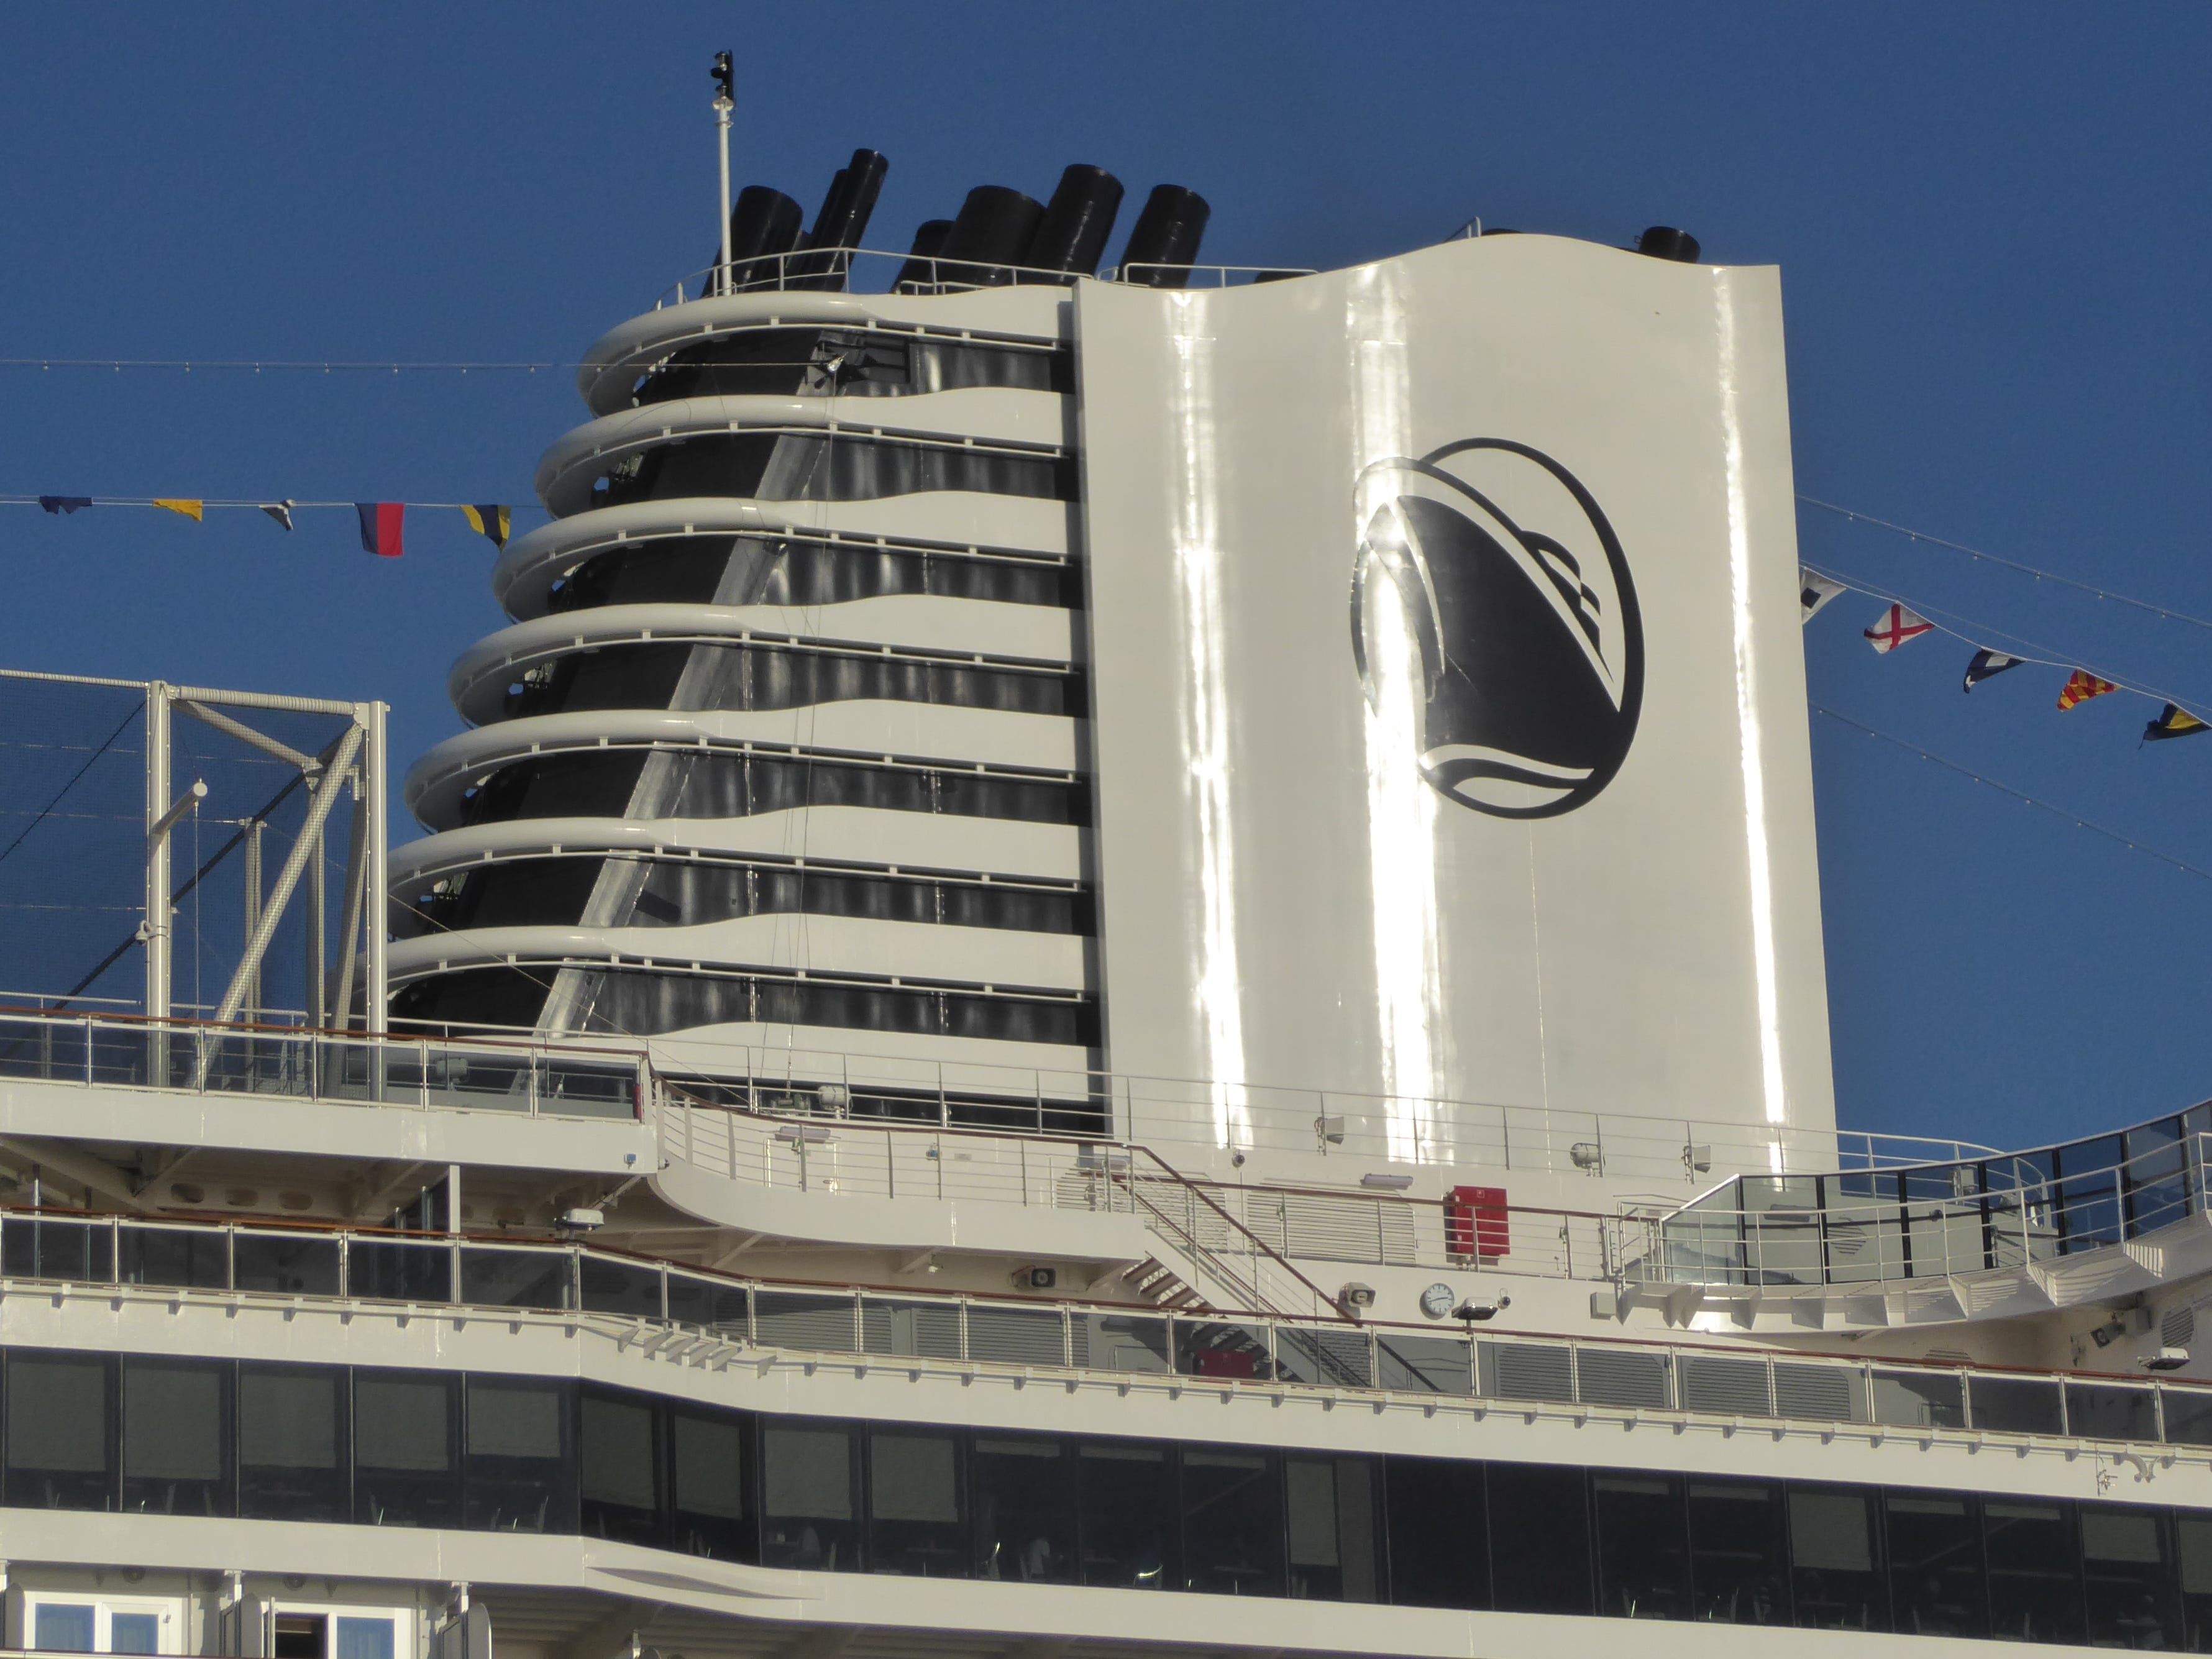 Conceived by architect Yran Storbratten, the Nieuw Statendam has a uniquely shaped funnel composed of stepped-up grillworks and wave-like flanks.